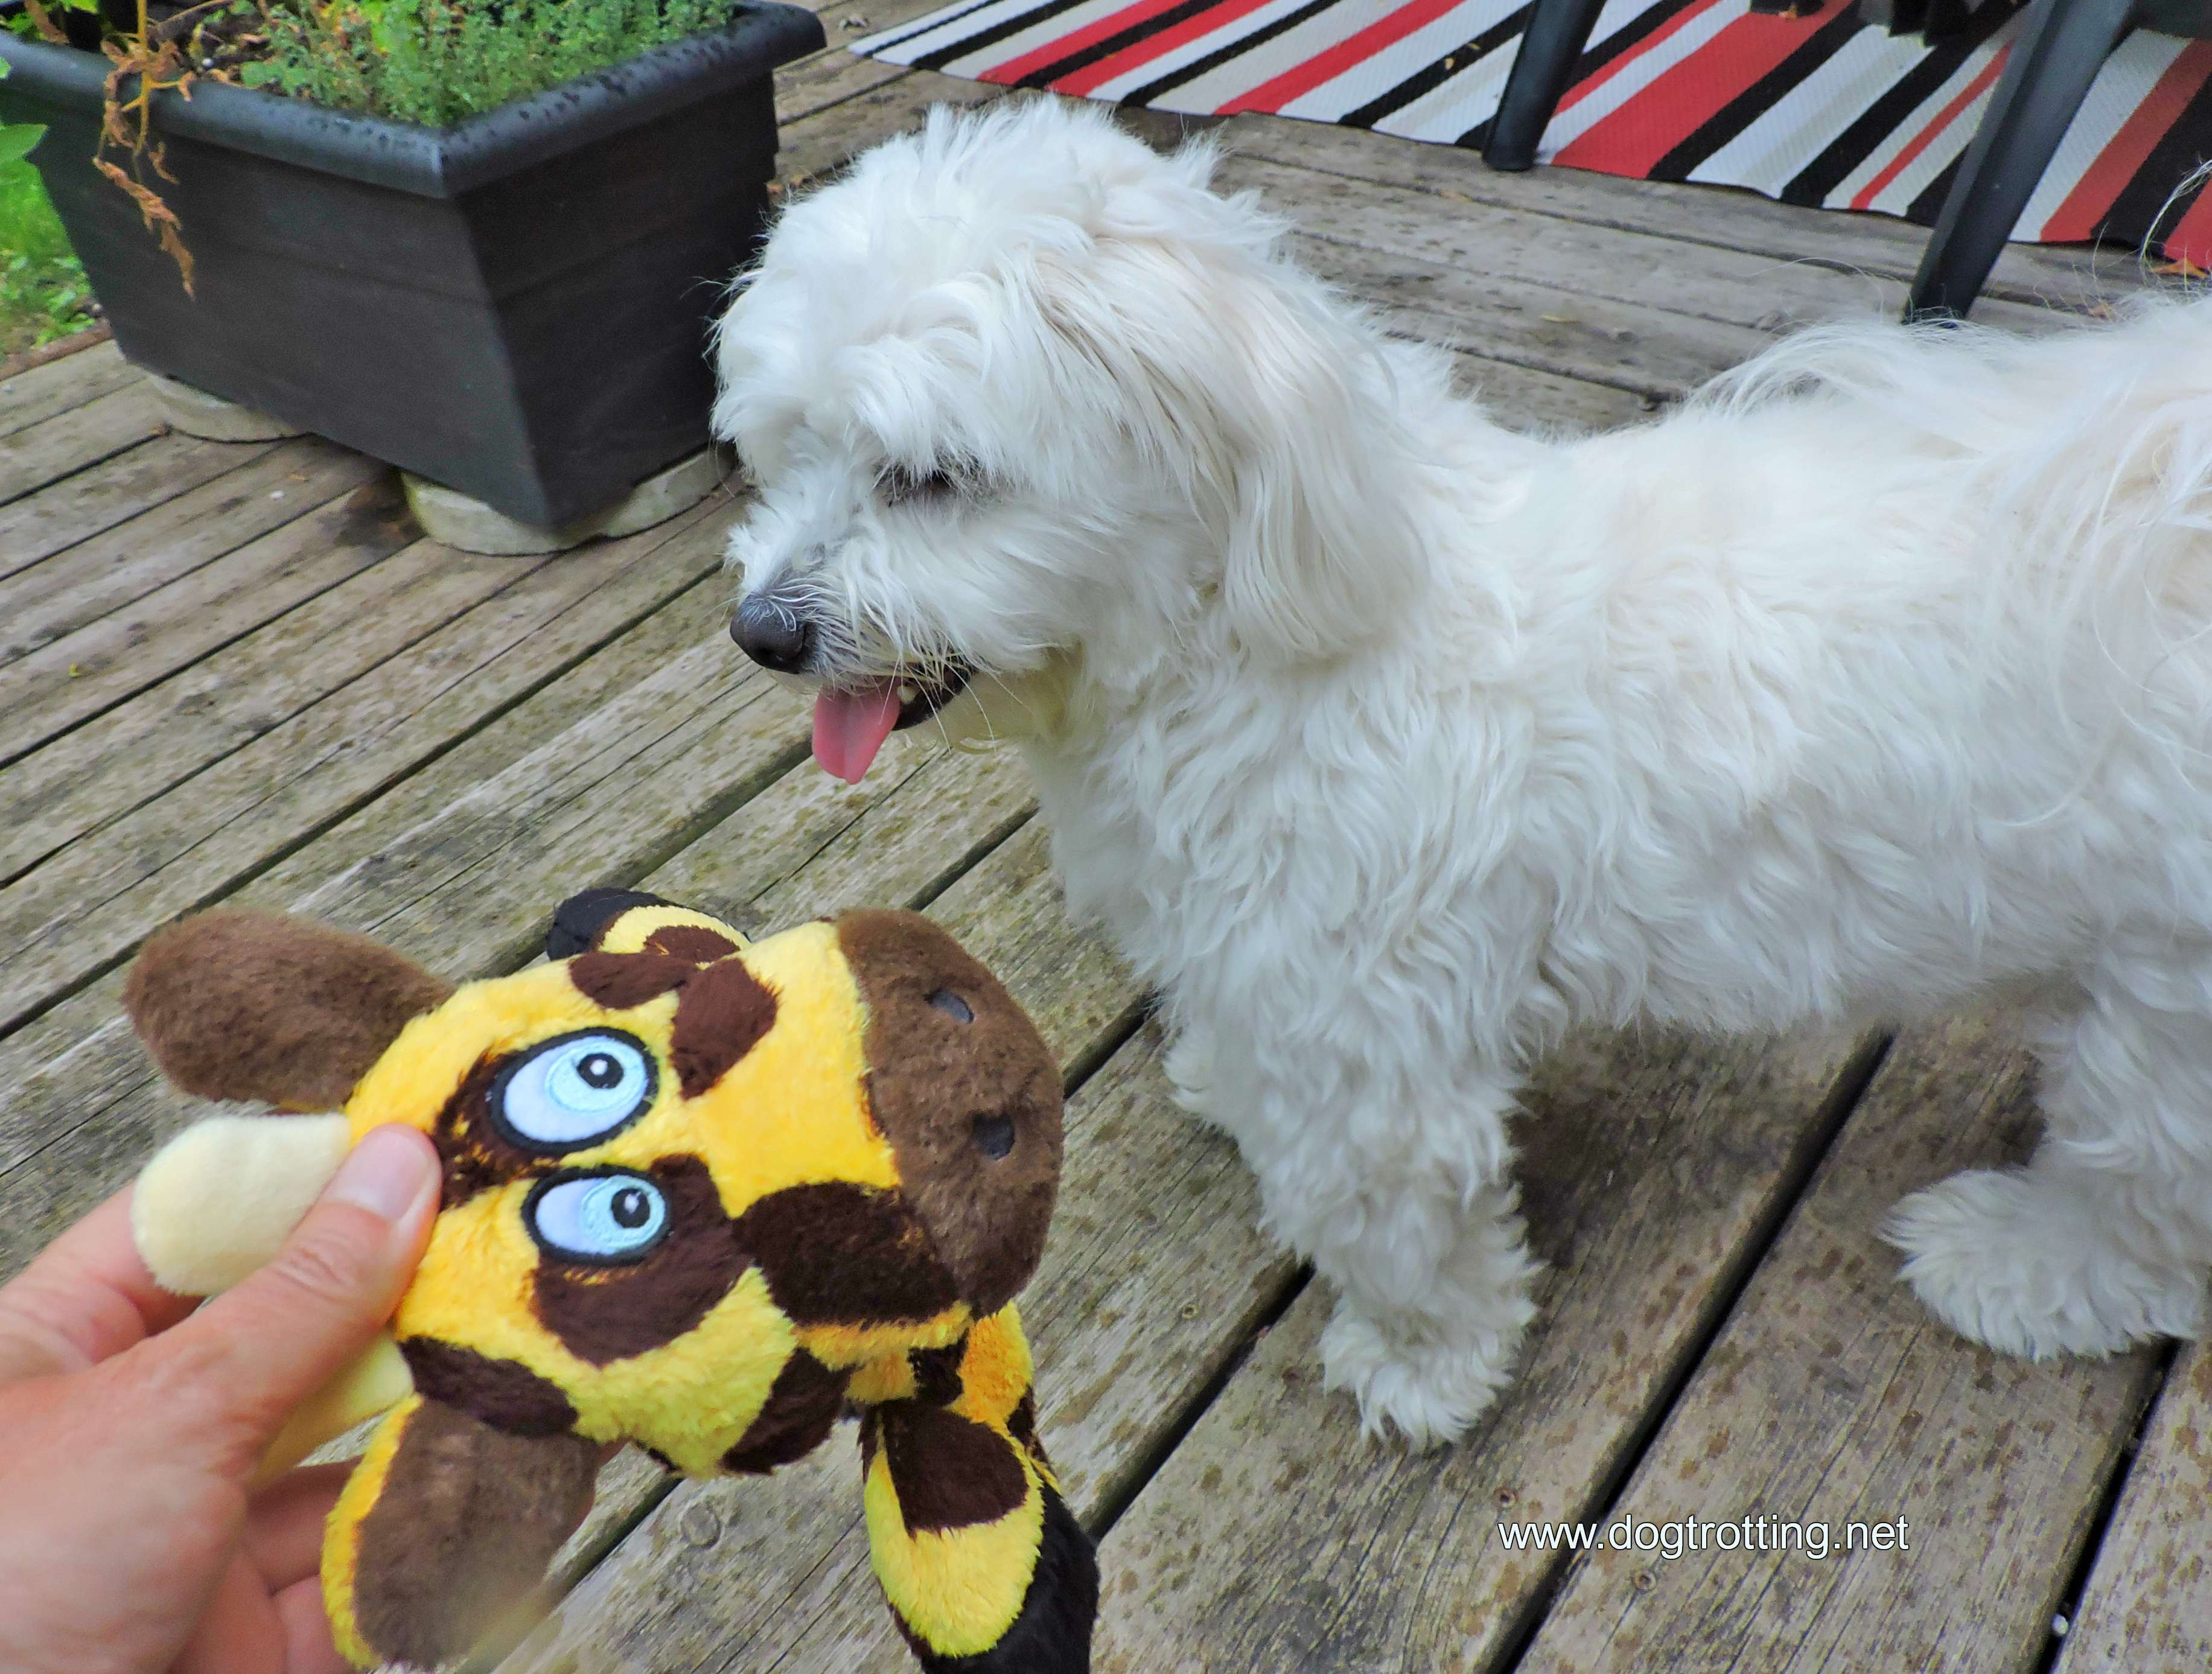 white dog with Hear Doggy dog toy